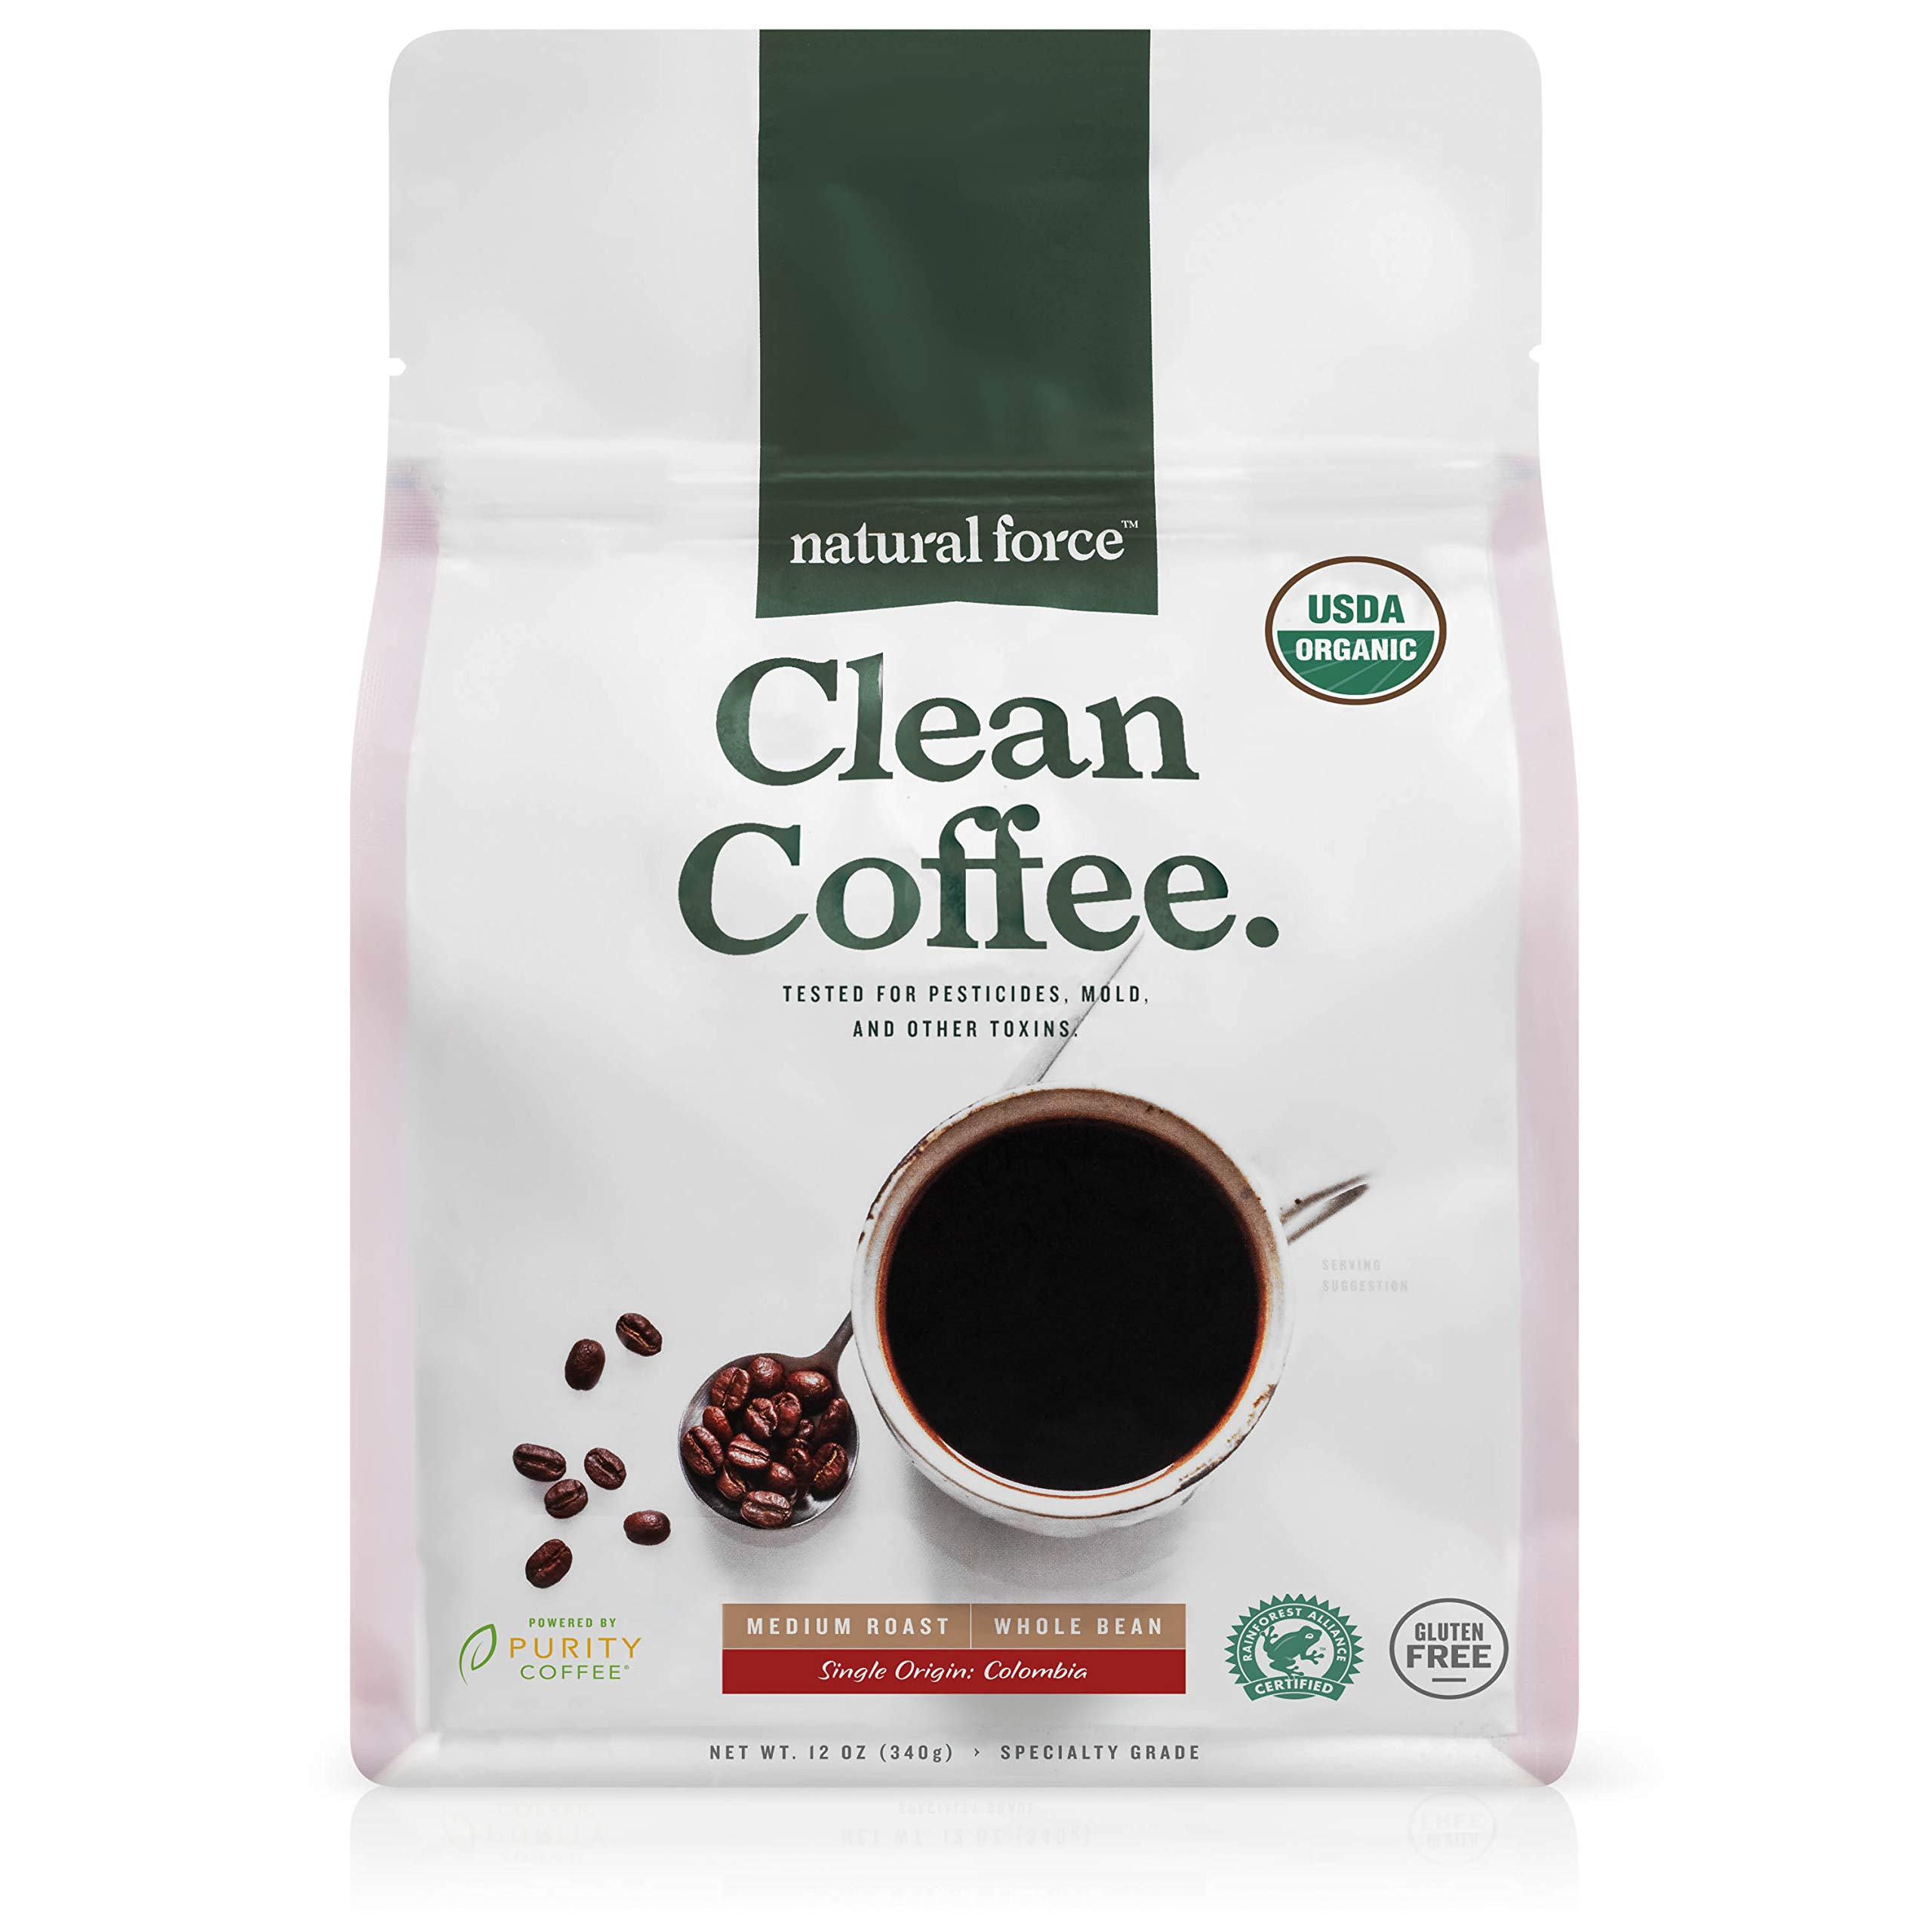 Natural Force Organic, Mold Free Clean Coffee – Low Acid, Whole Bean, Rainforest Alliance Certified Medium Roast - Great Taste + Aroma - Tested for Toxins and Powered by Purity - 12 Ounce Bag